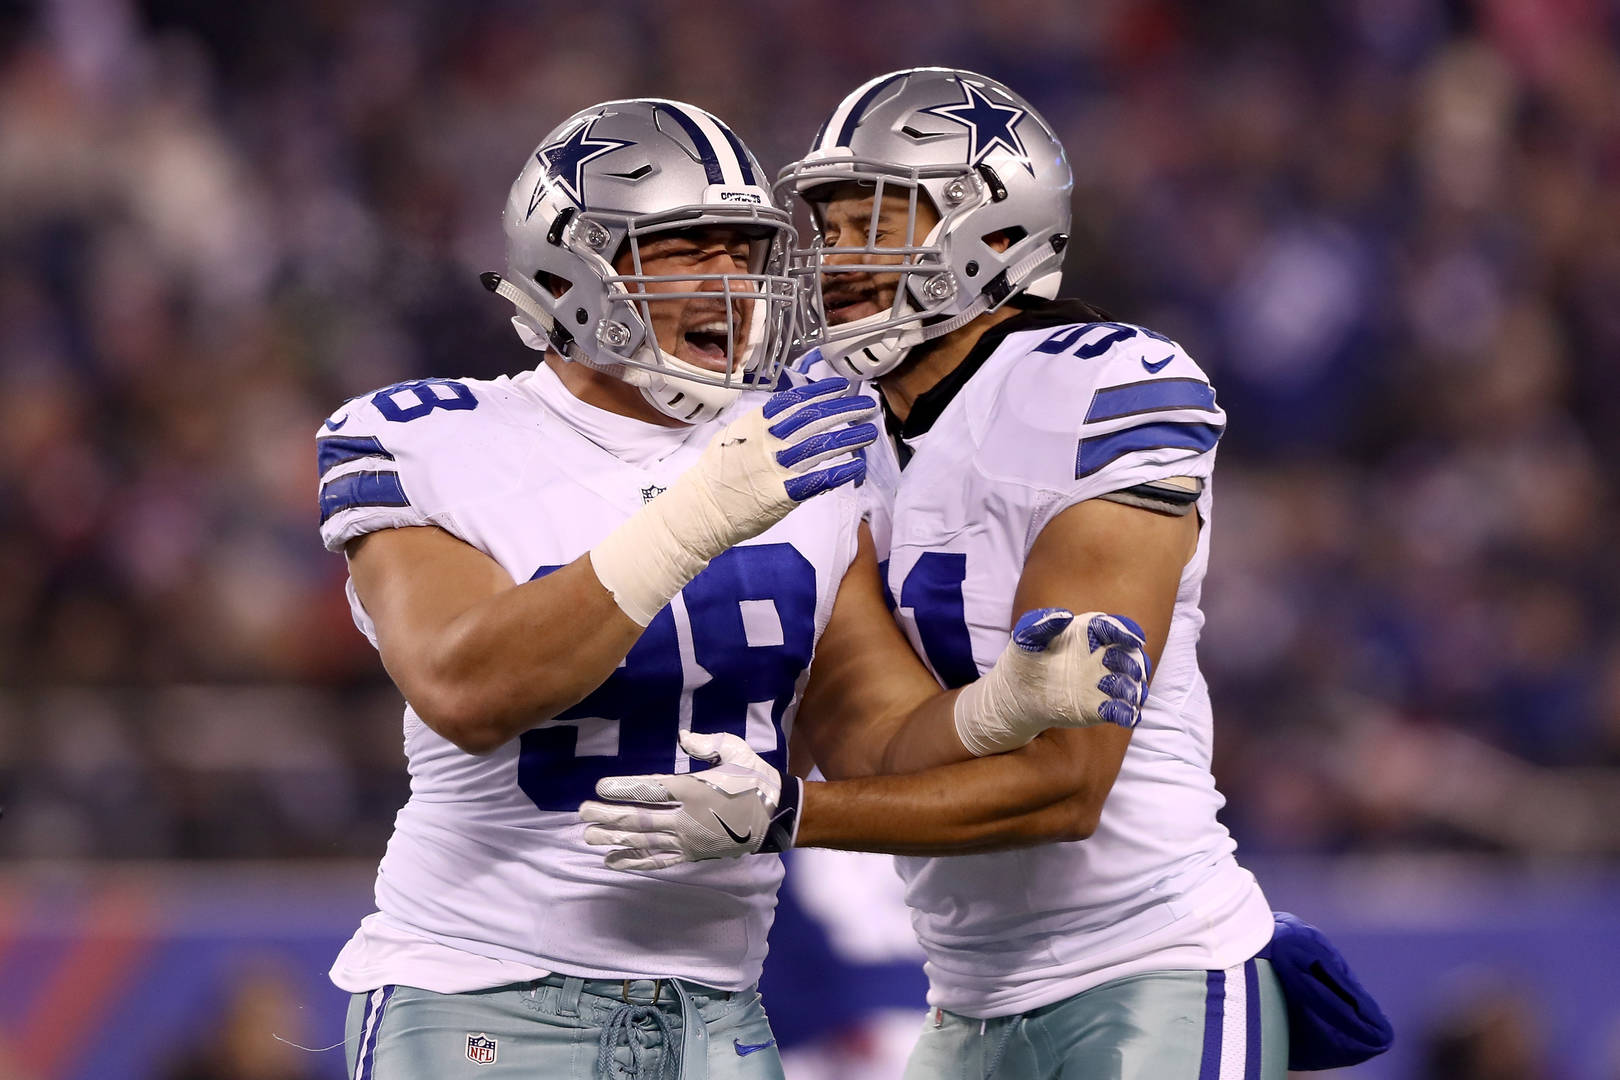 Tyrone Crawford Investigated By NFL Over Bloody Bar Fight